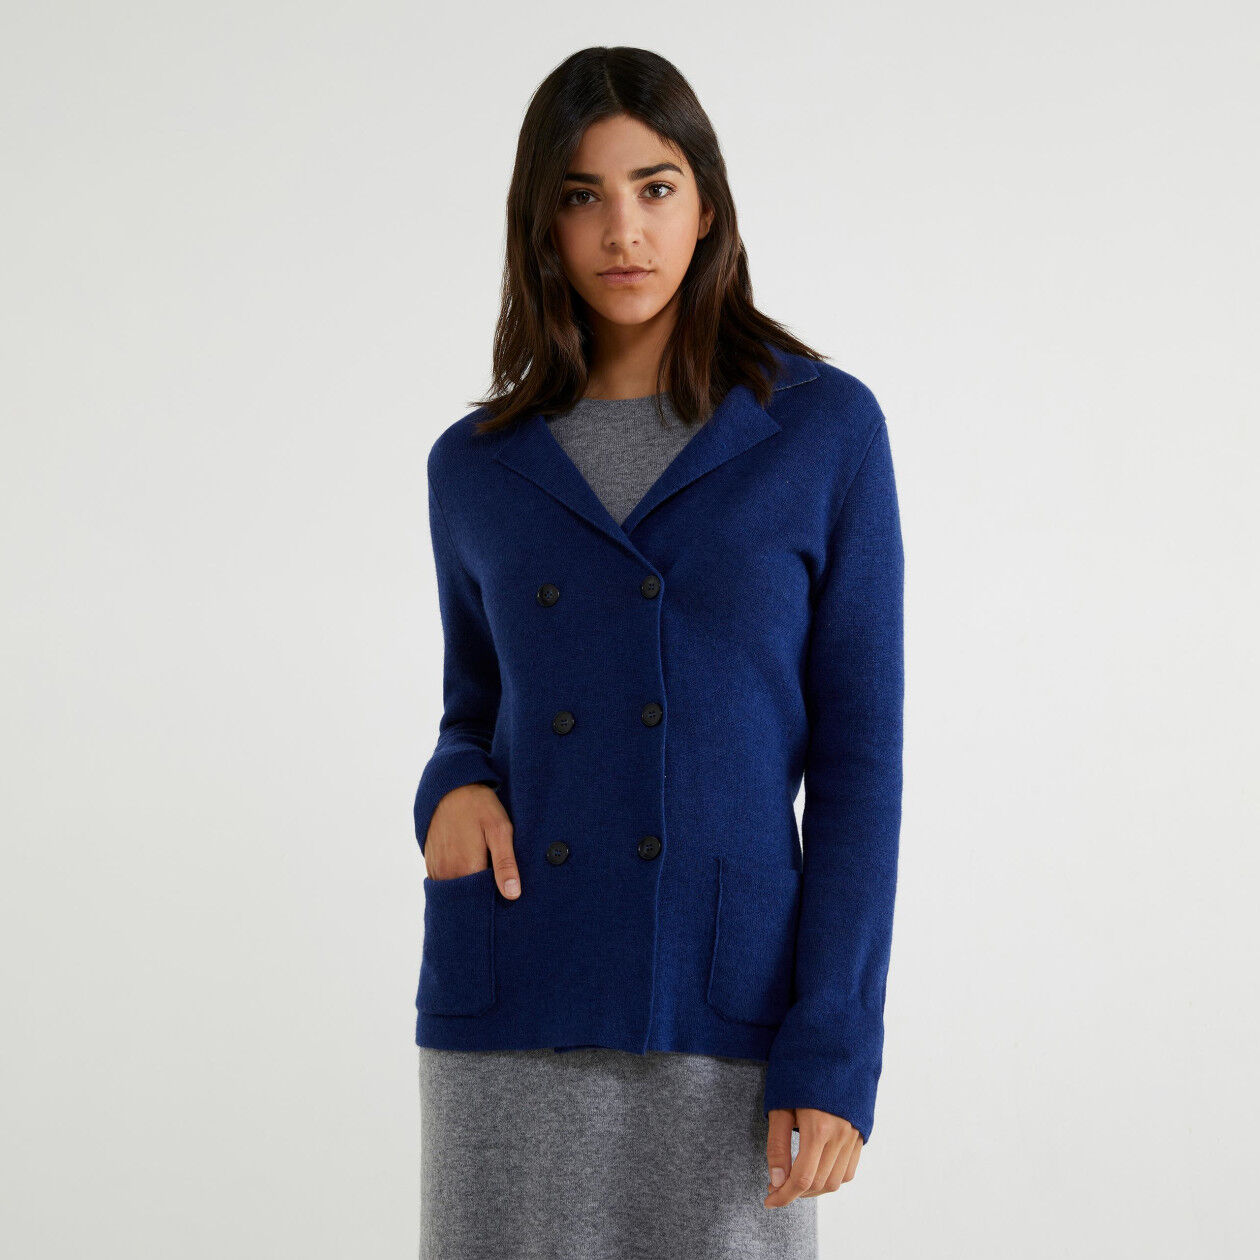 Double-breasted knit jacket